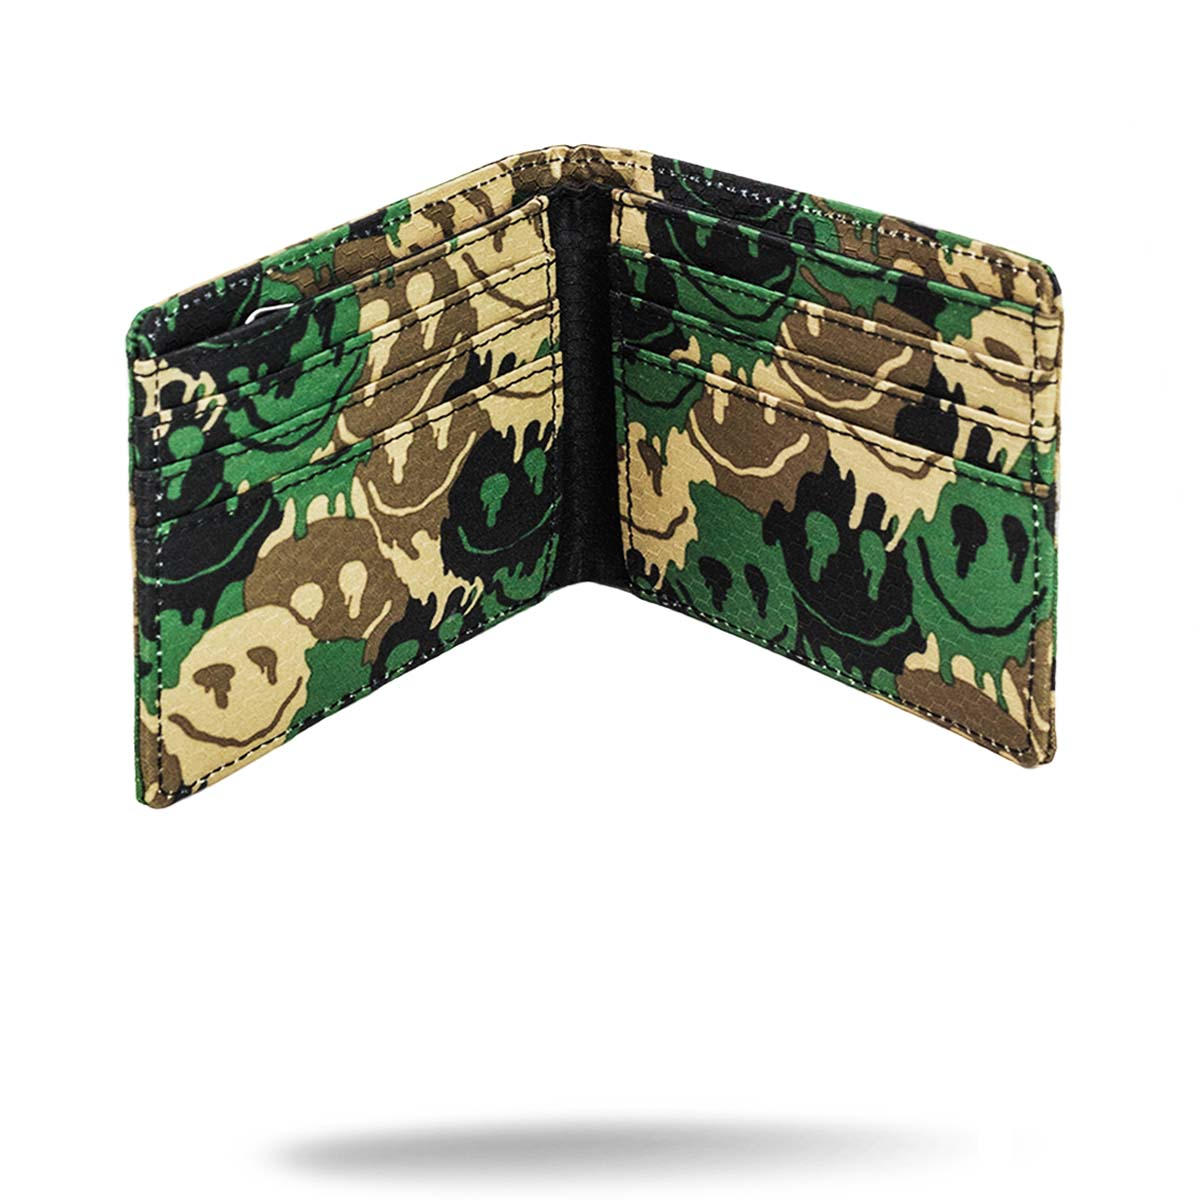 Inside view of camo printed unisex wallet